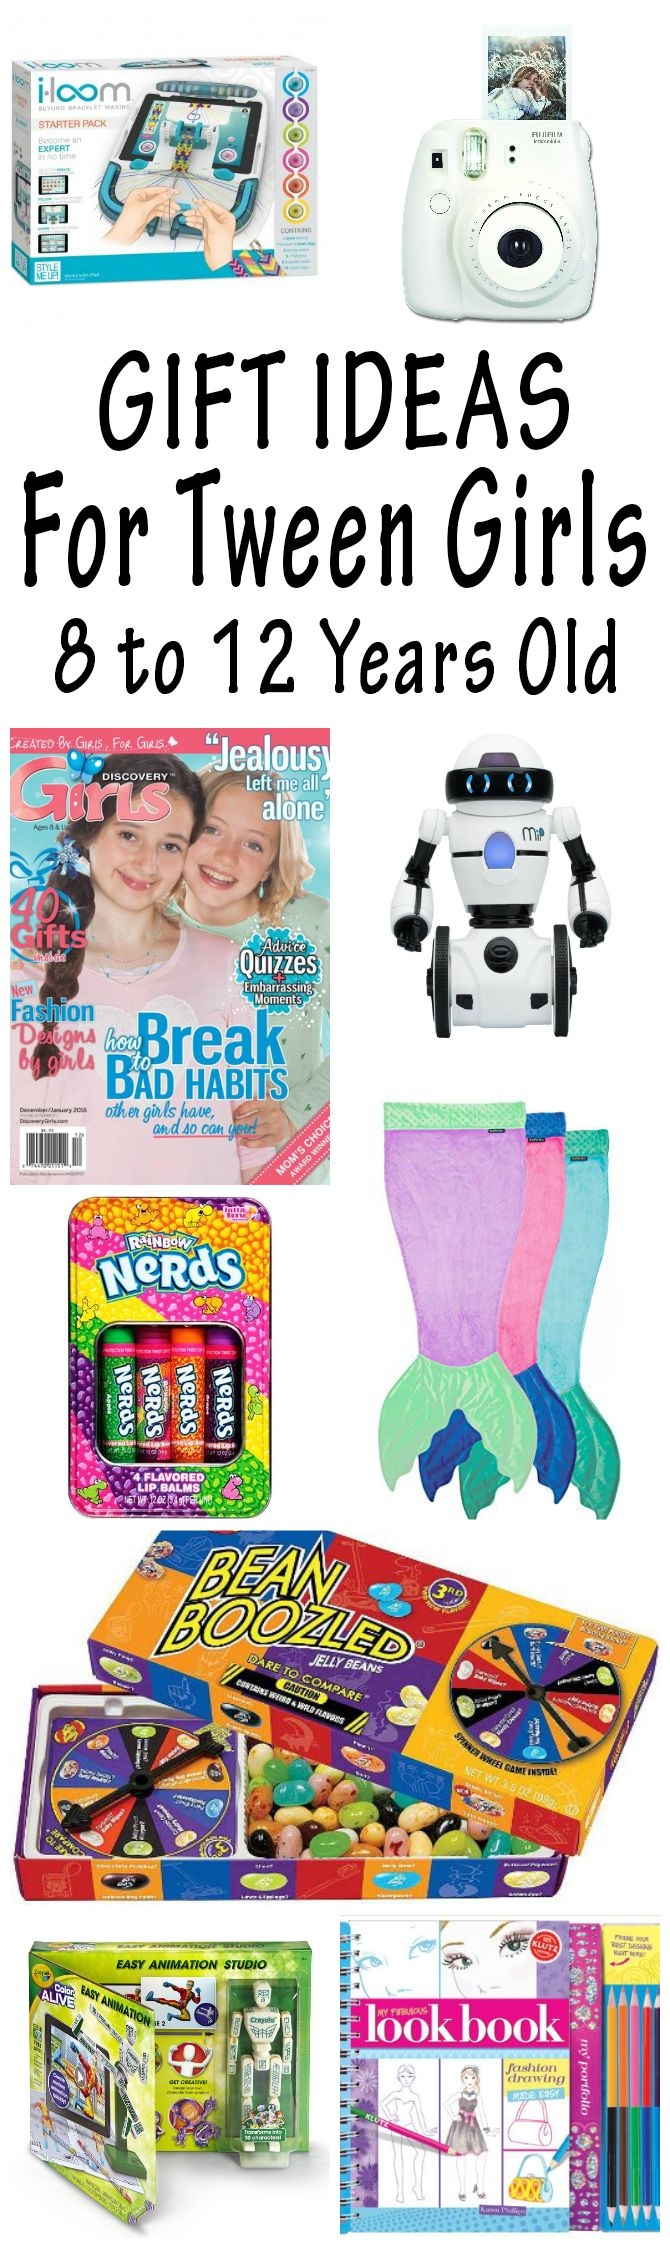 Craft ideas for 9 year old girls - Lots Of Great Gift Ideas For Tween Girls 8 To 12 Years Old